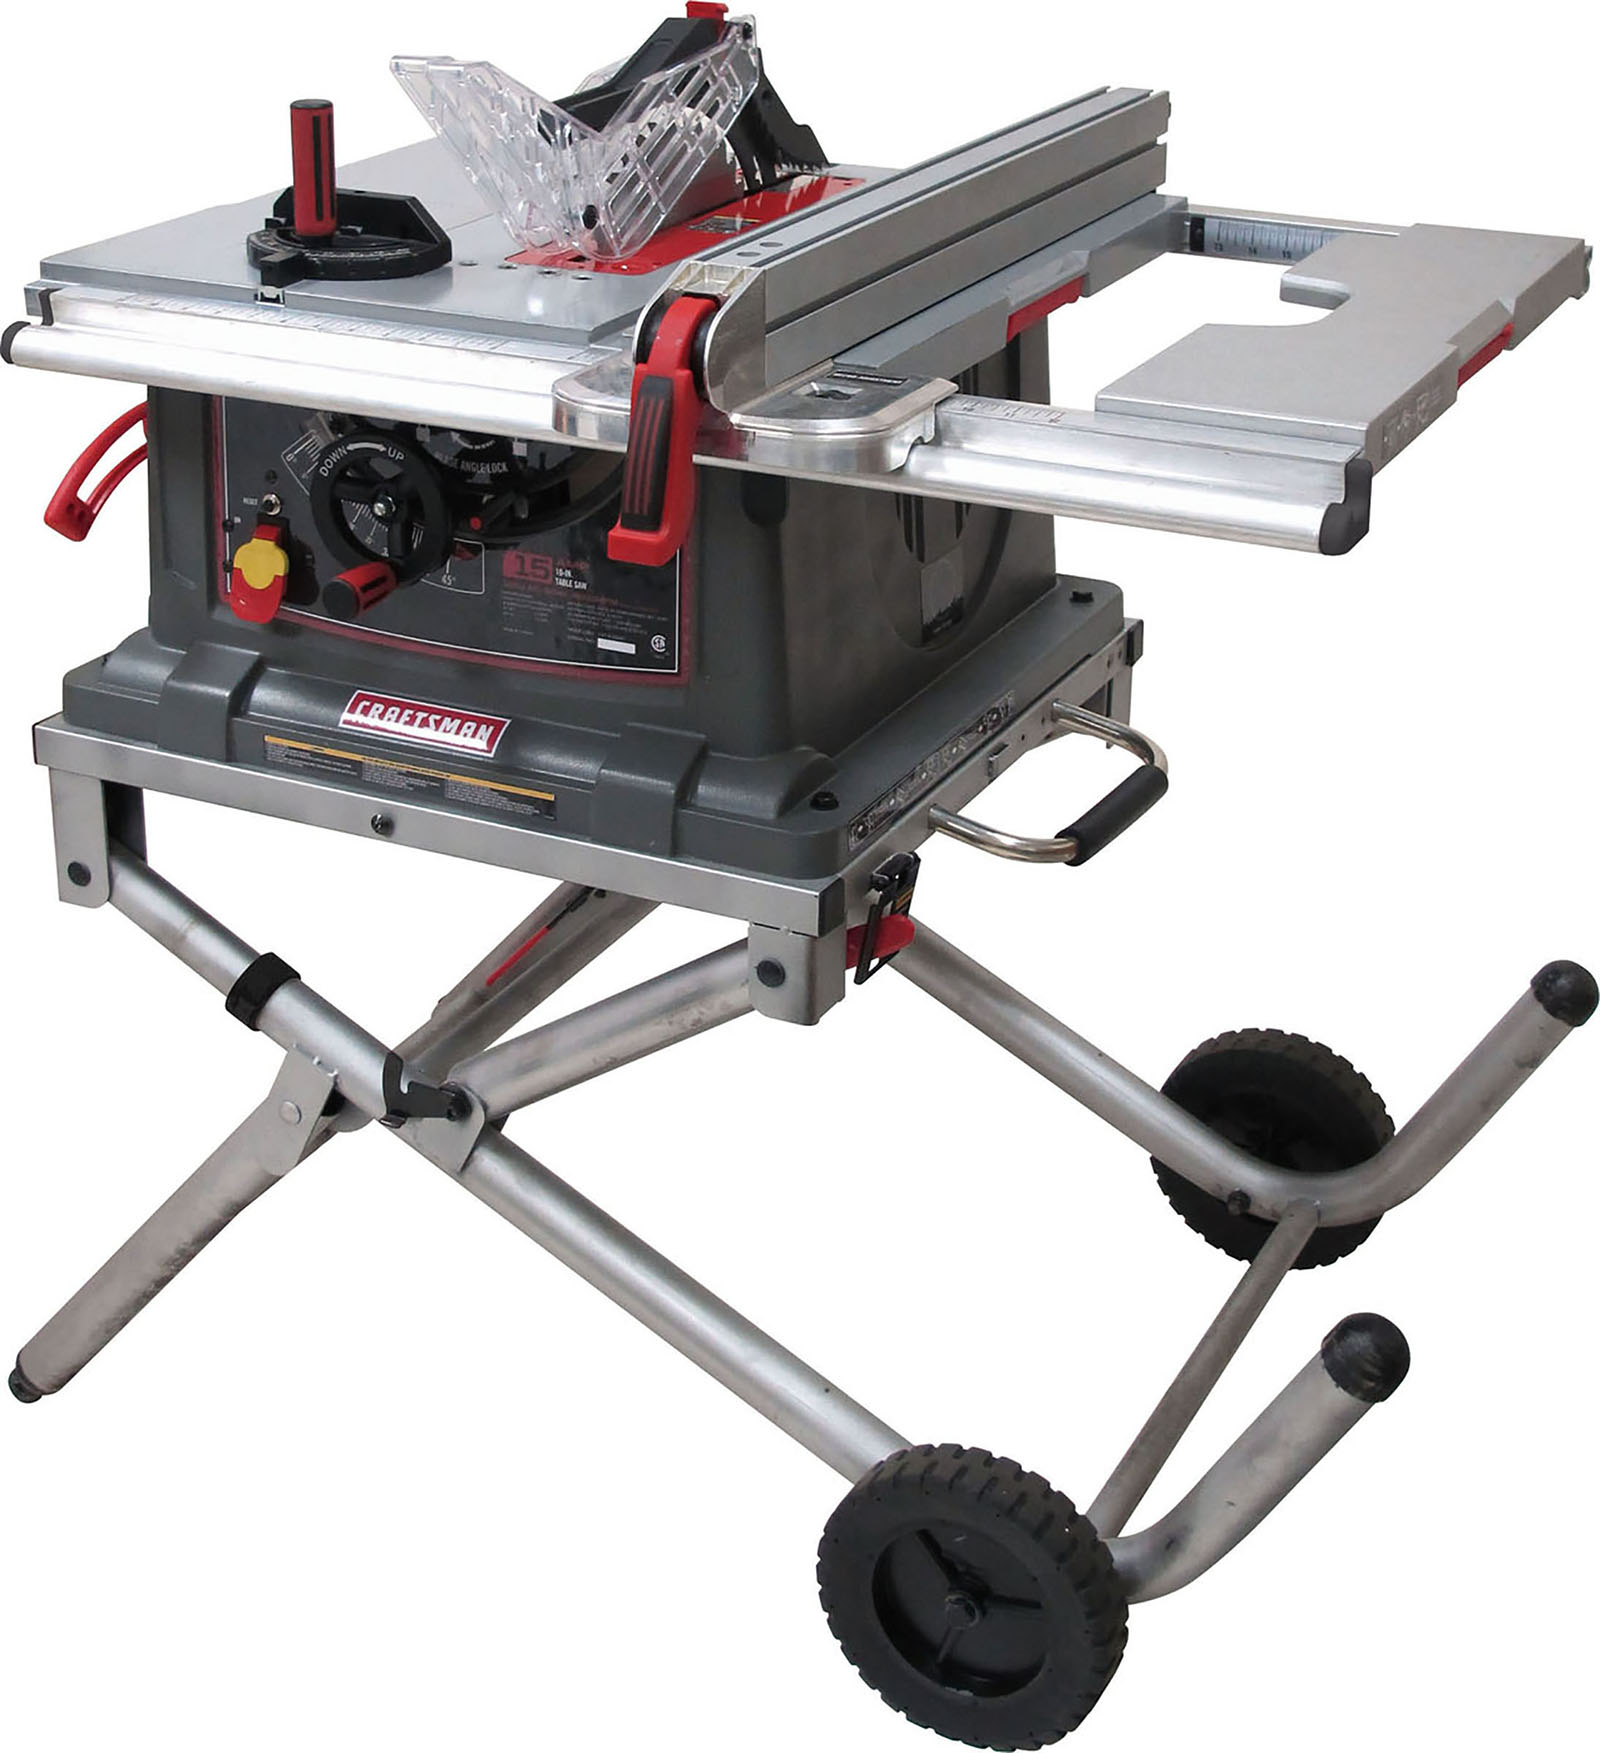 medium resolution of craftsman 10 portable table saw wiring diagram for craftsman table saw 137 248830